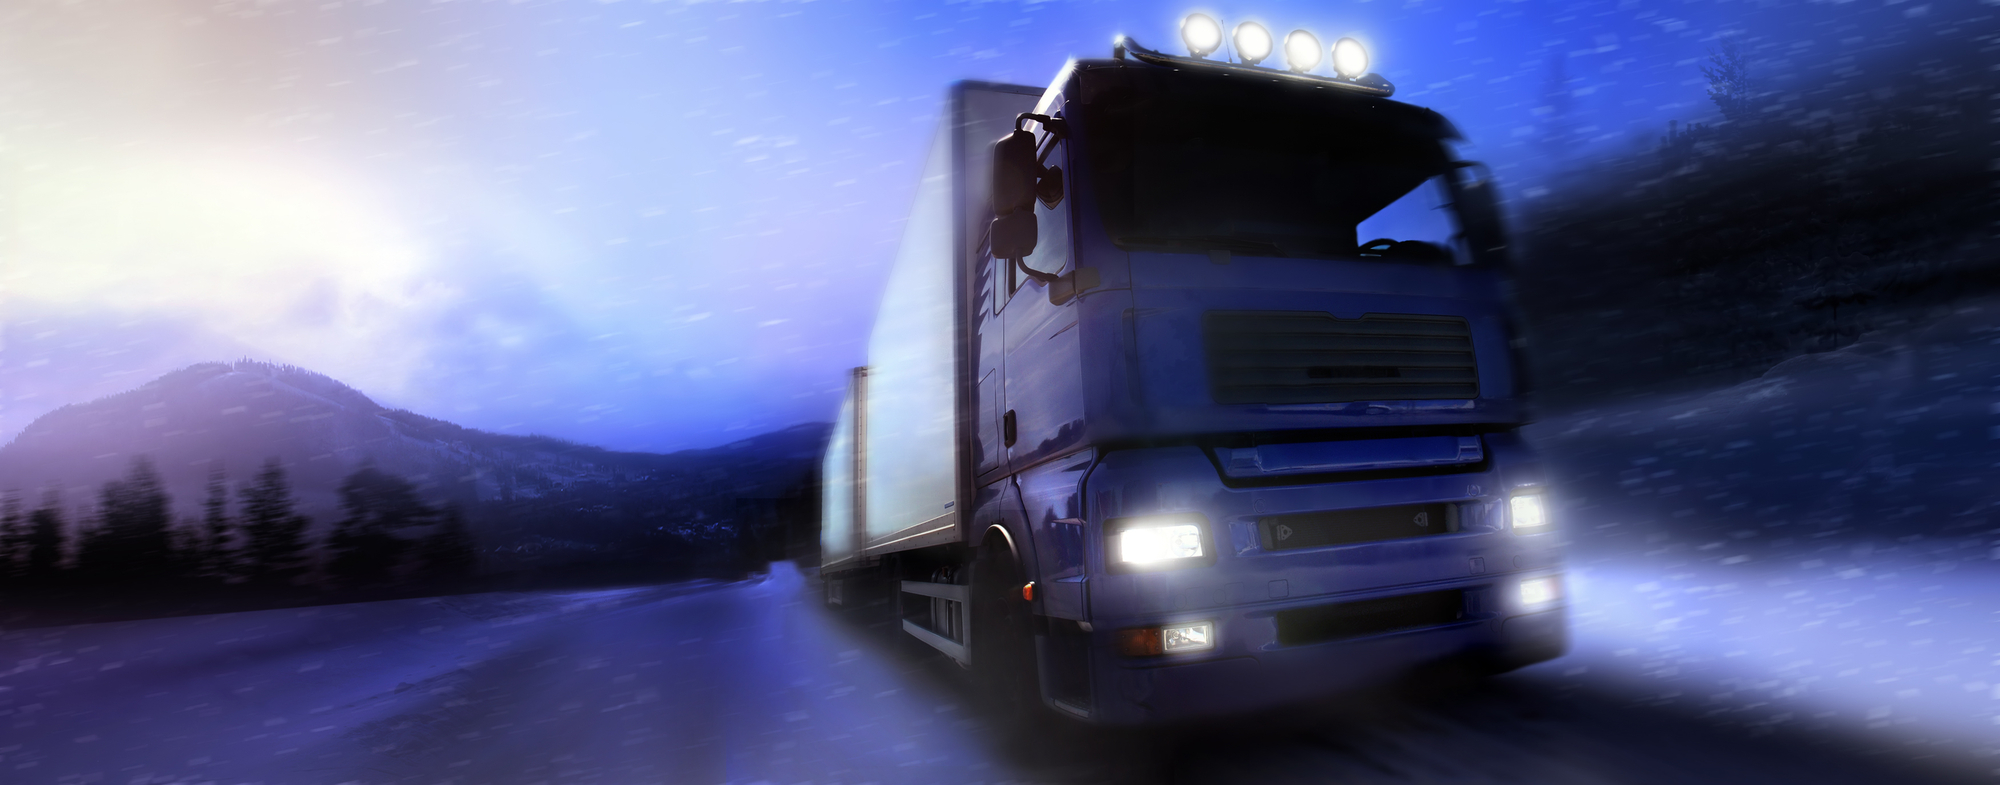 Truck driving at night in the snow